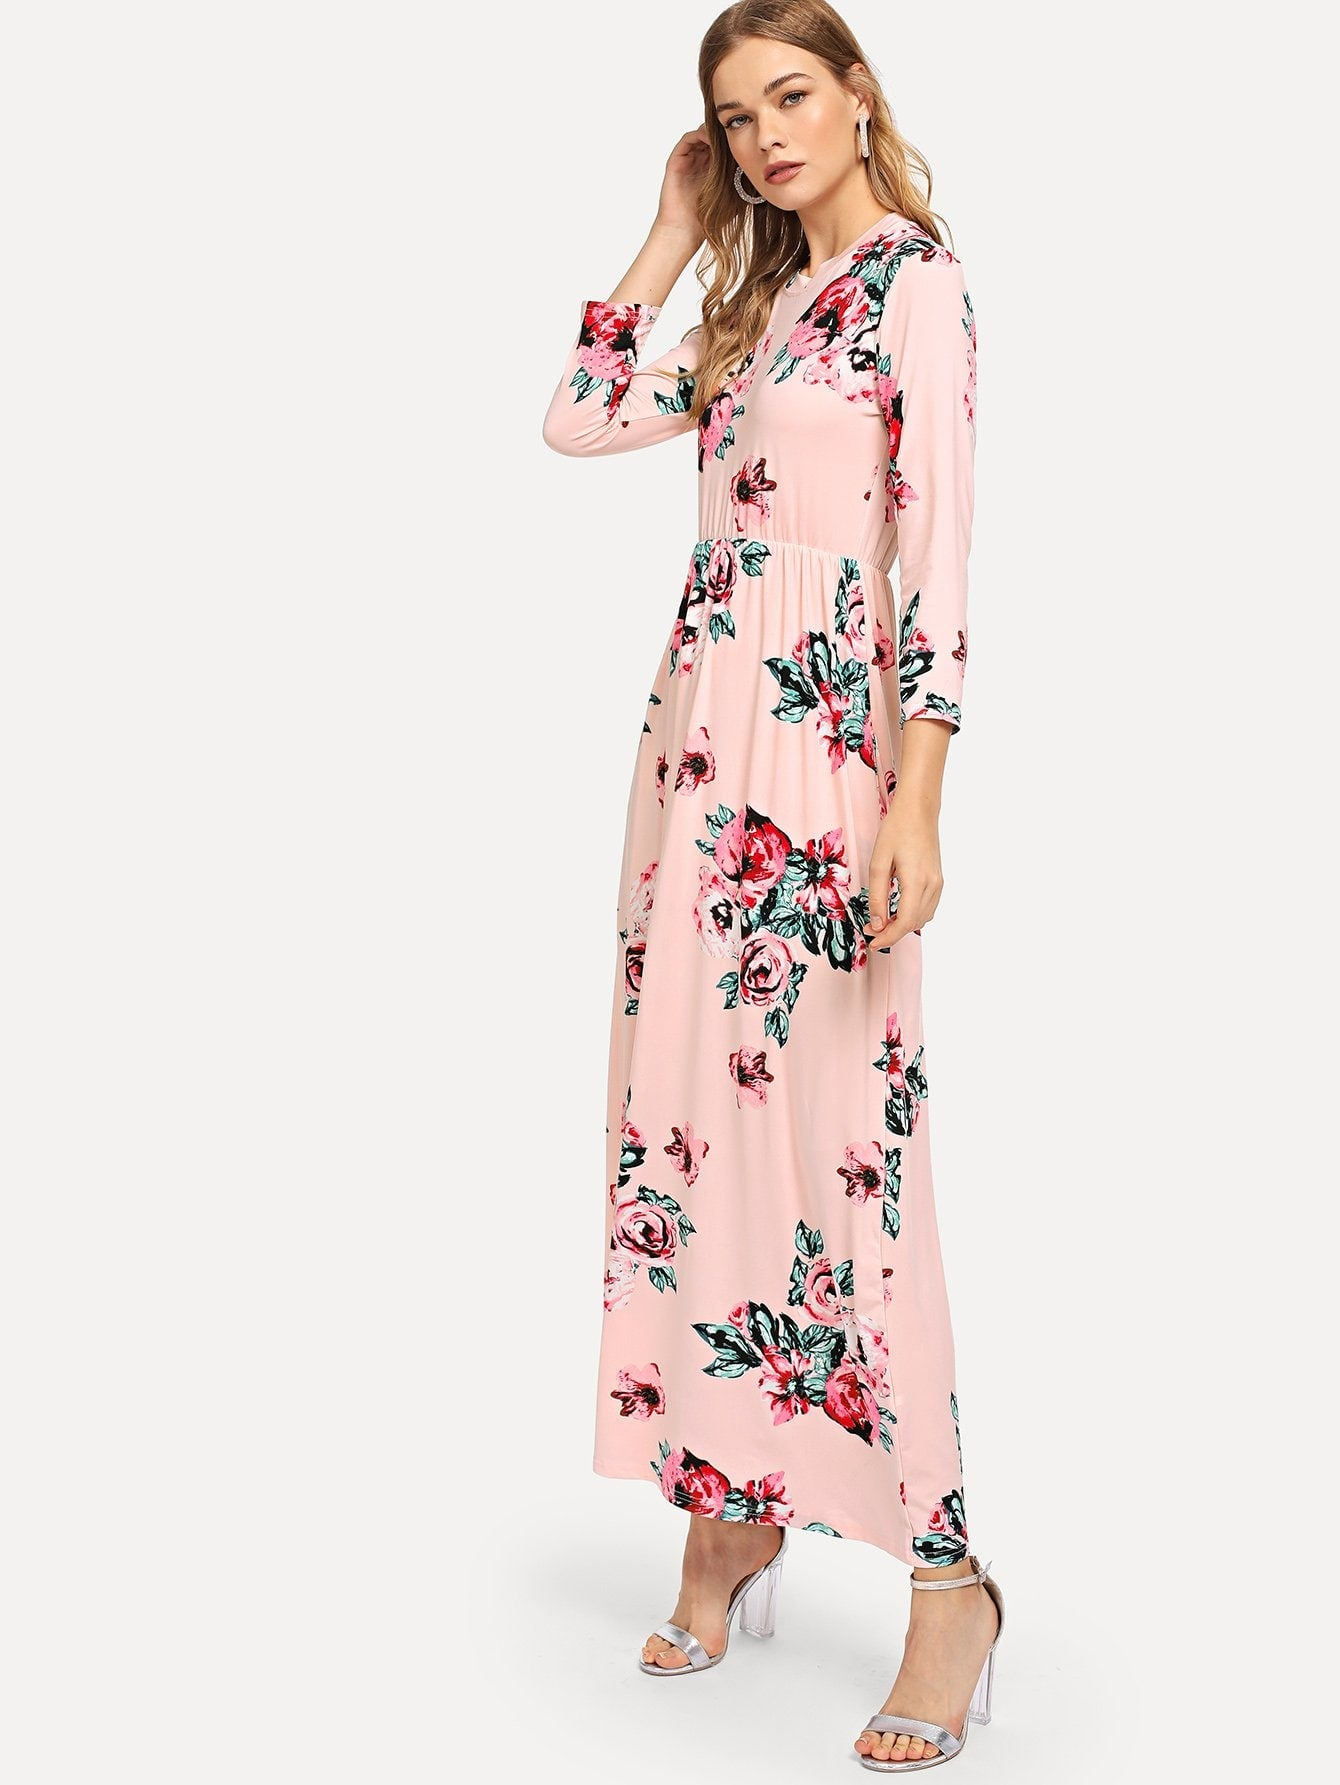 f79d8275a8bc Clothing | Shop Women's Pink Floral Print Long Dress at Fashiontage